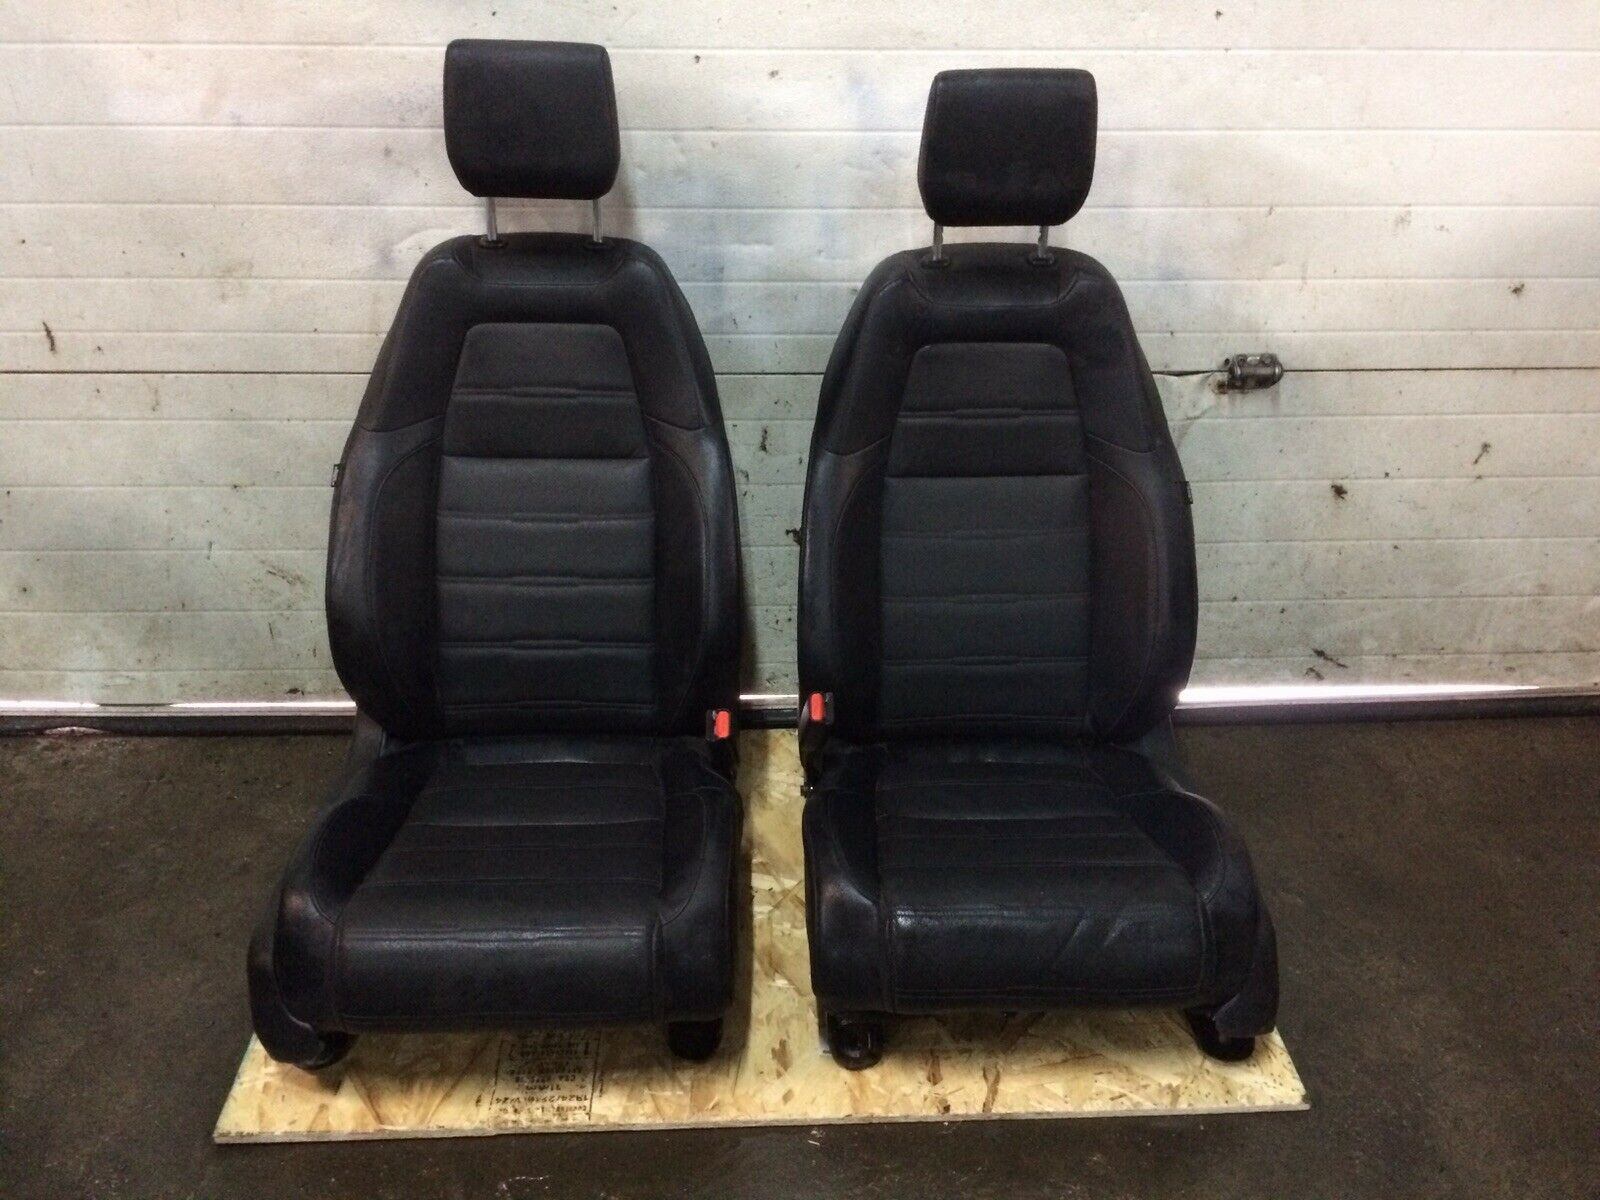 Honda CRV Leather Black Front Driver Passenger OEM Seats Fits 2017-2018